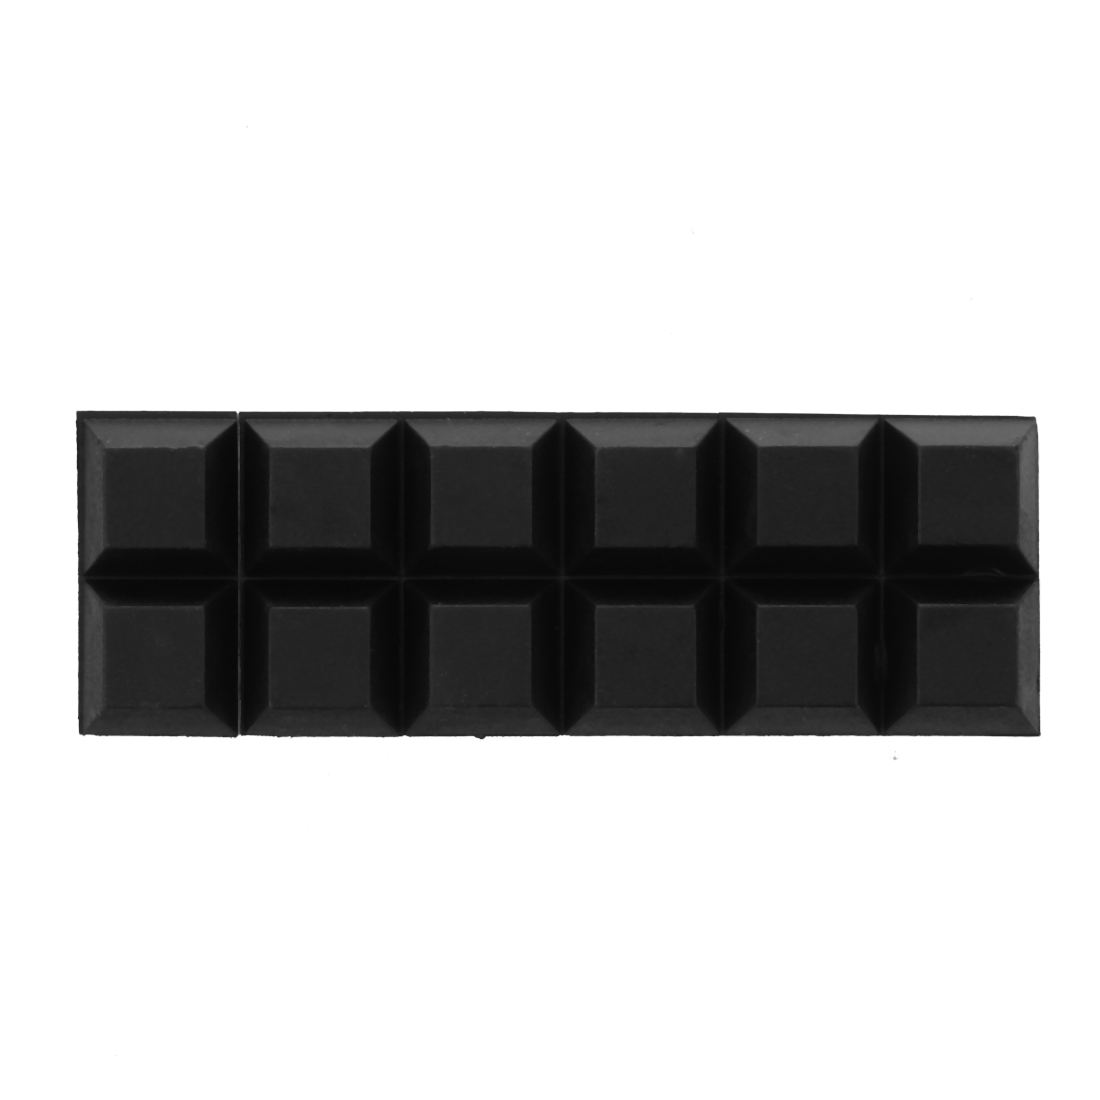 Tools Wholesales Chair Furniture Square 12mmx12mmx6mm Self Adhesive Rubber Pads 12 In 1